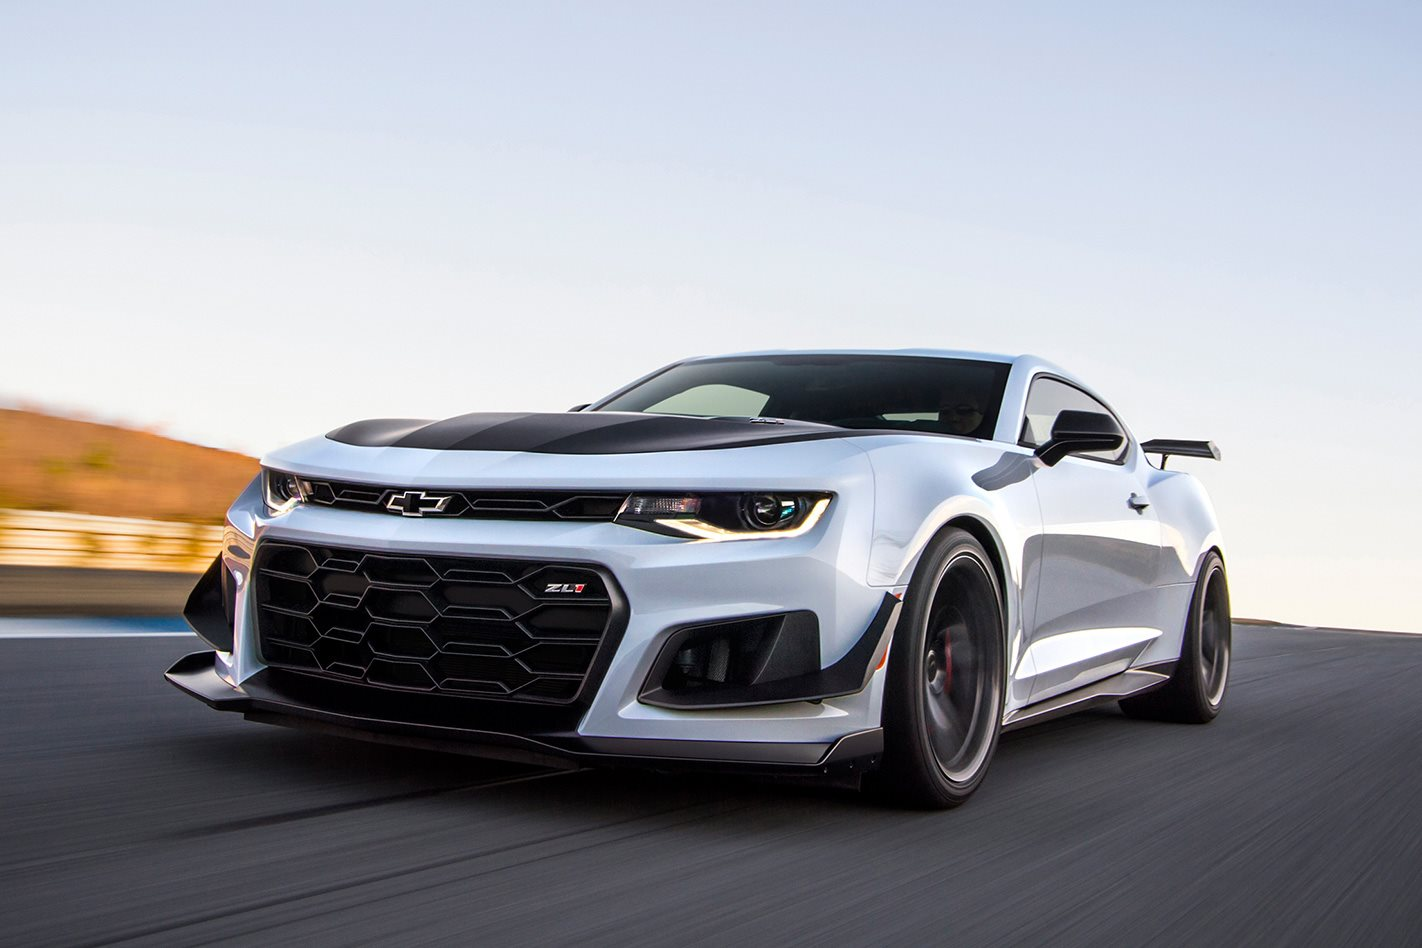 2018 Chevrolet Camaro Zl1 1le Revealed